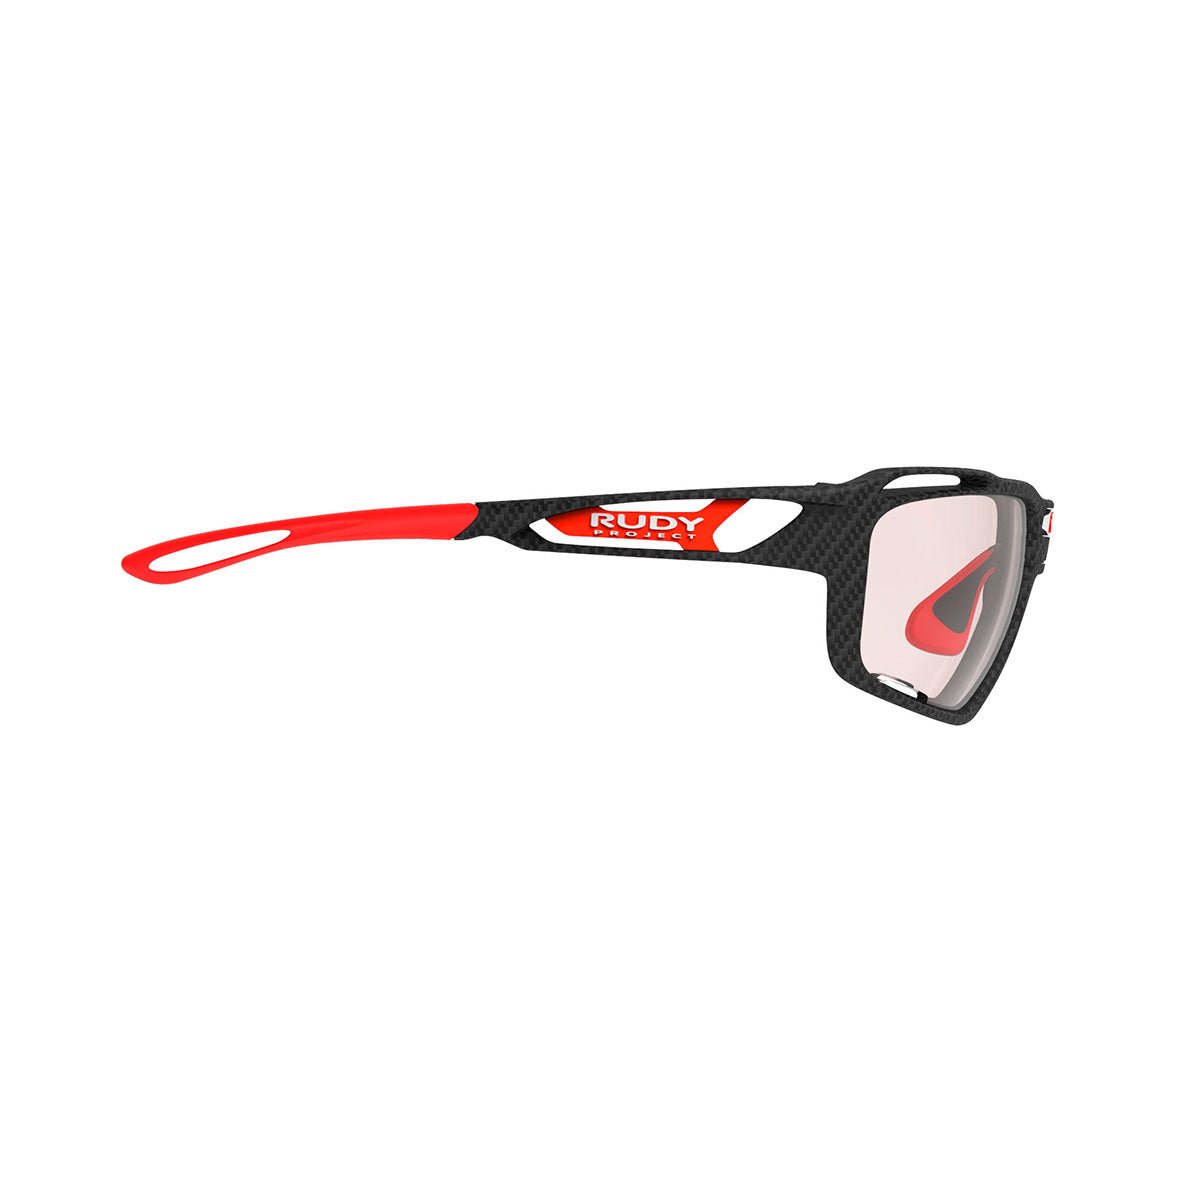 Rudy Project - Sintryx - frame color: Carbonium - lens color: ImpactX-2 Photochromic Clear to Red - Bumper Color:  - photo angle: Side Variant Hover Image